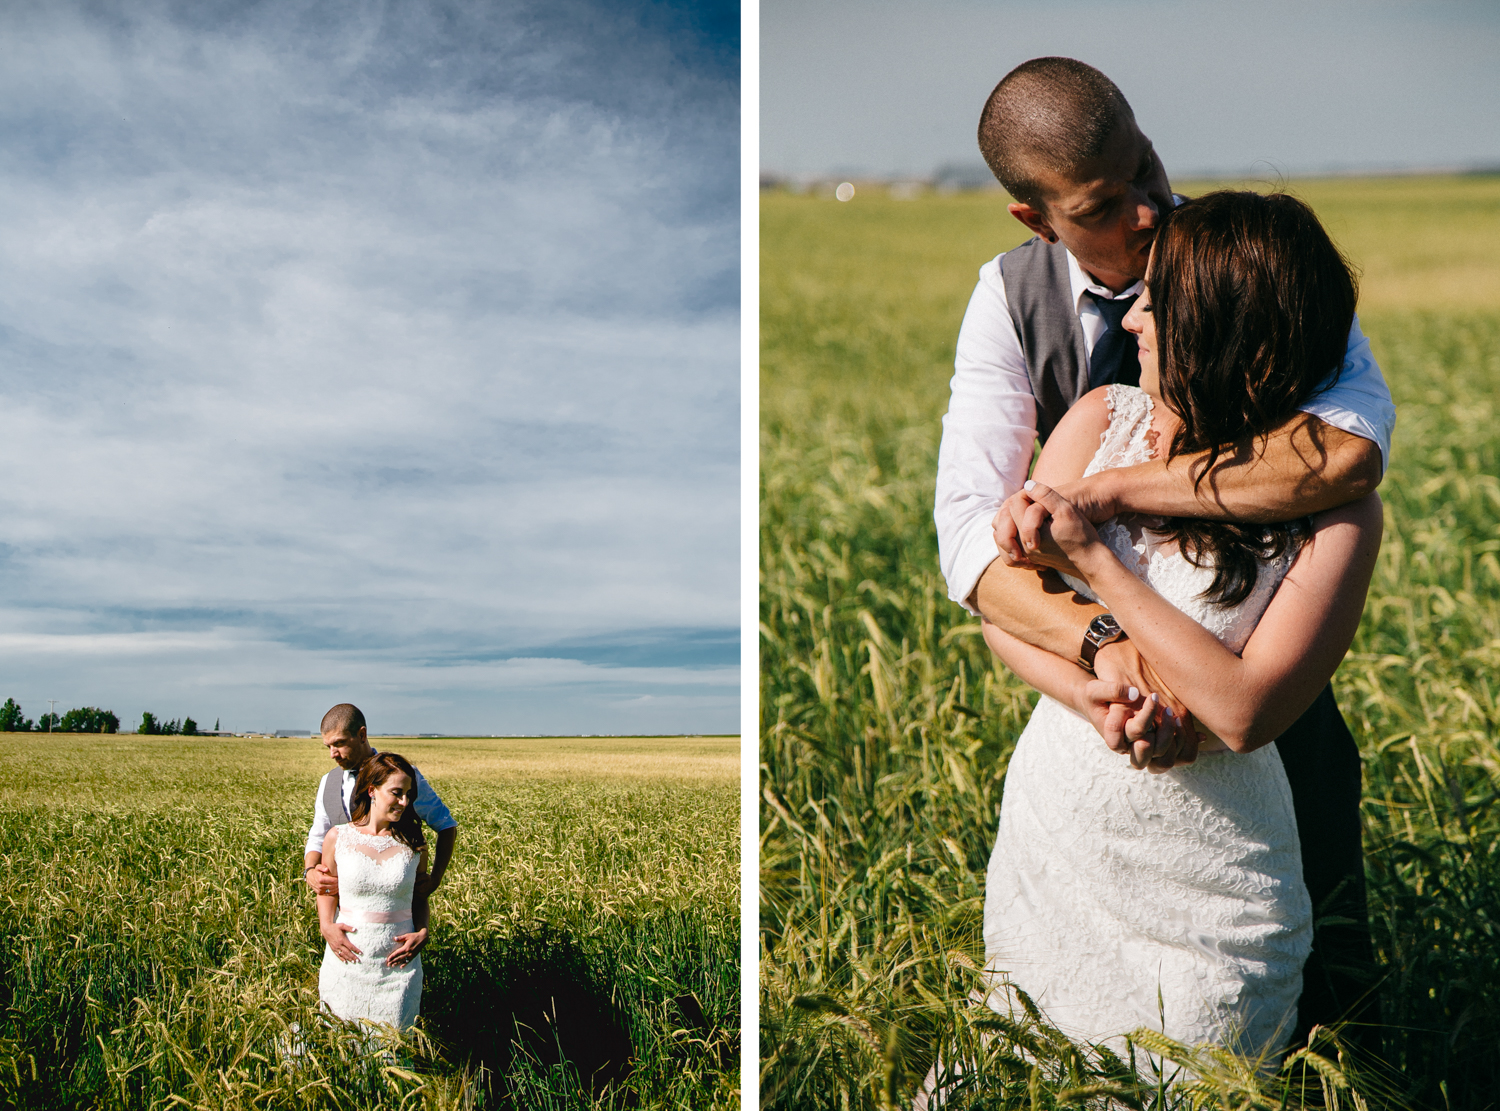 lethbridge-wedding-photography-love-and-be-loved-photographers-ashlin-anne-backyard-wedding-image-picture-photo-369.jpg